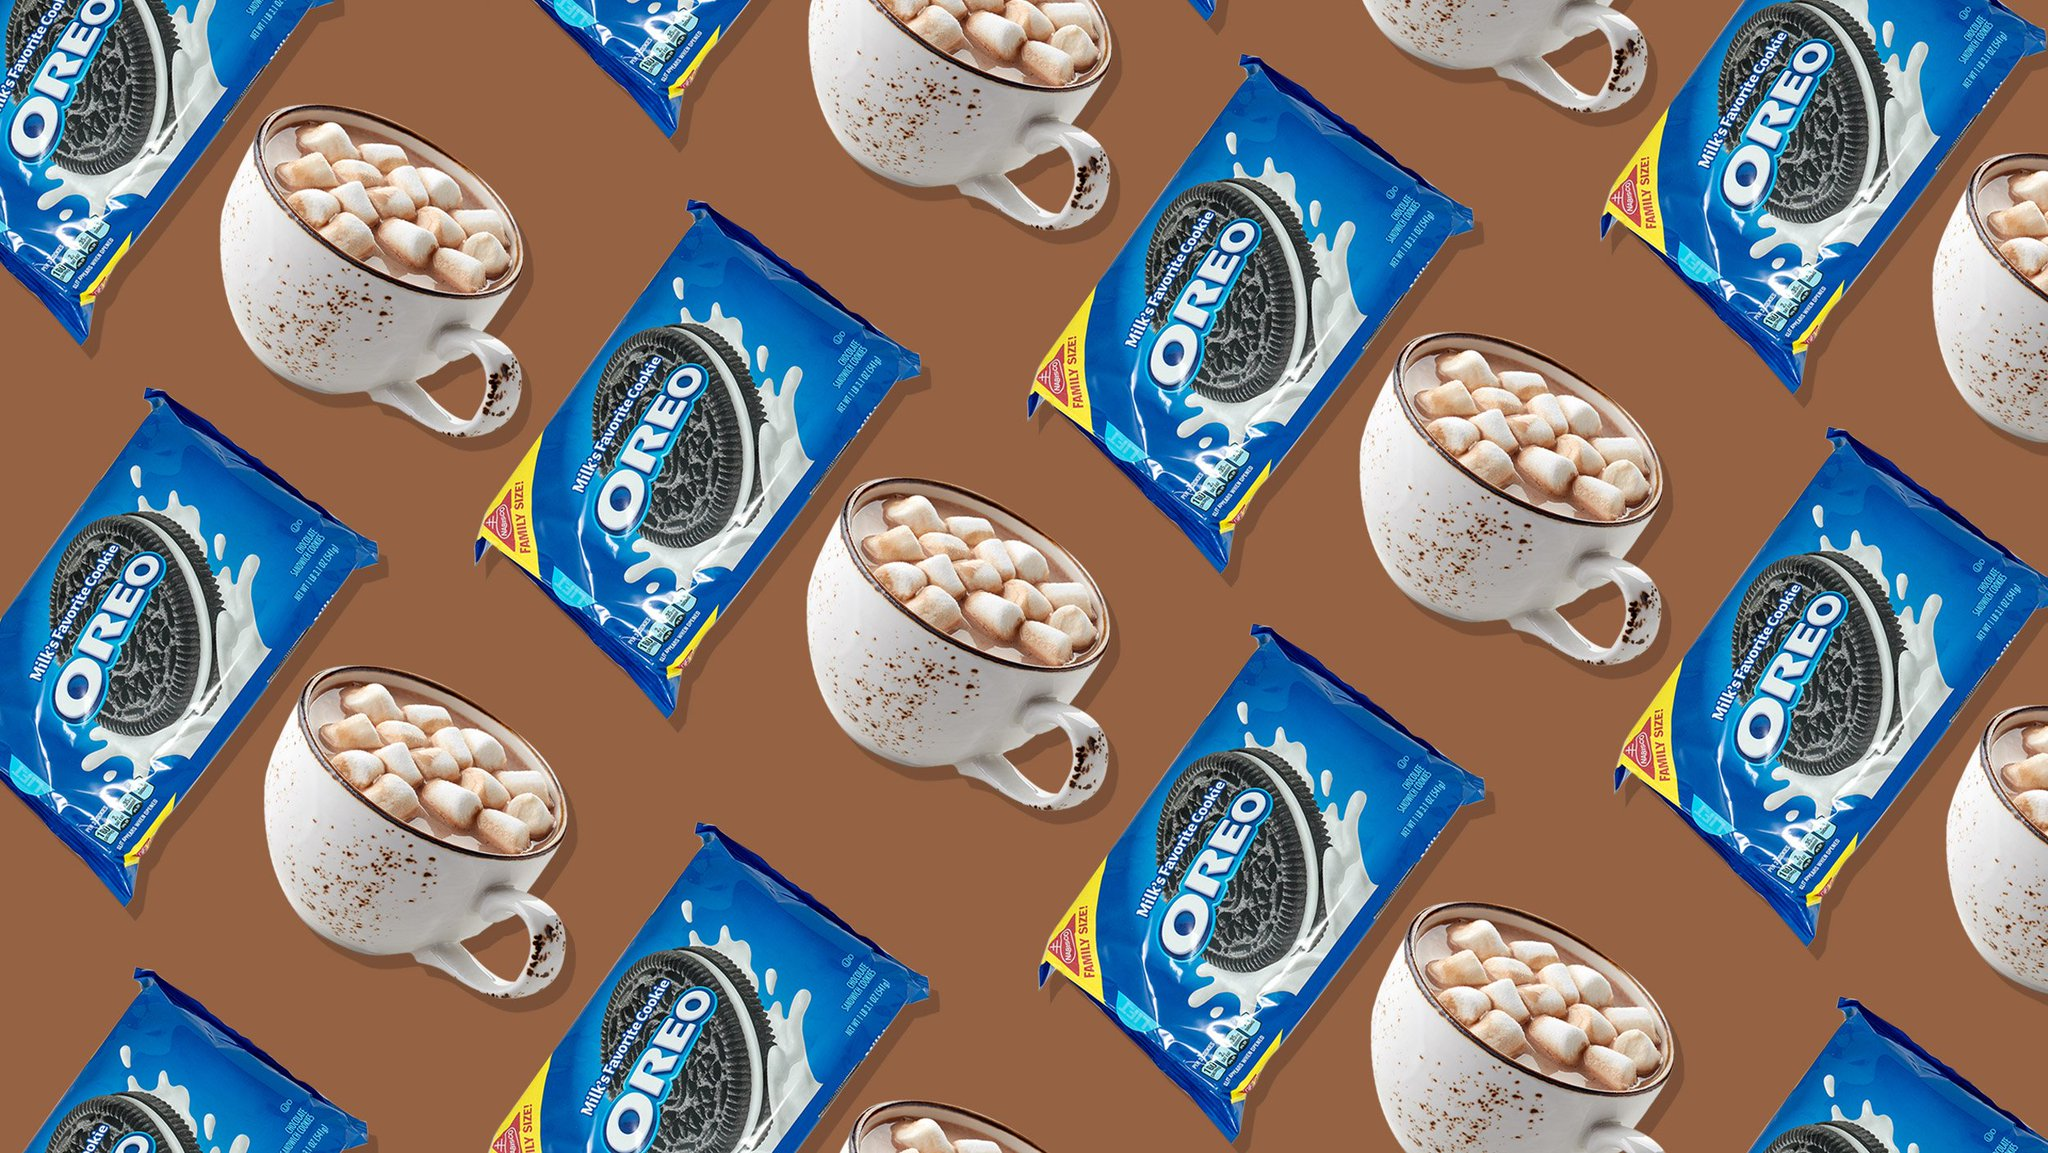 Oreo Hot Cocoa Mix may be our favorite plan for surviving winter https://t.co/c1fhj0ffCK https://t.co/D8oml3Ns5I